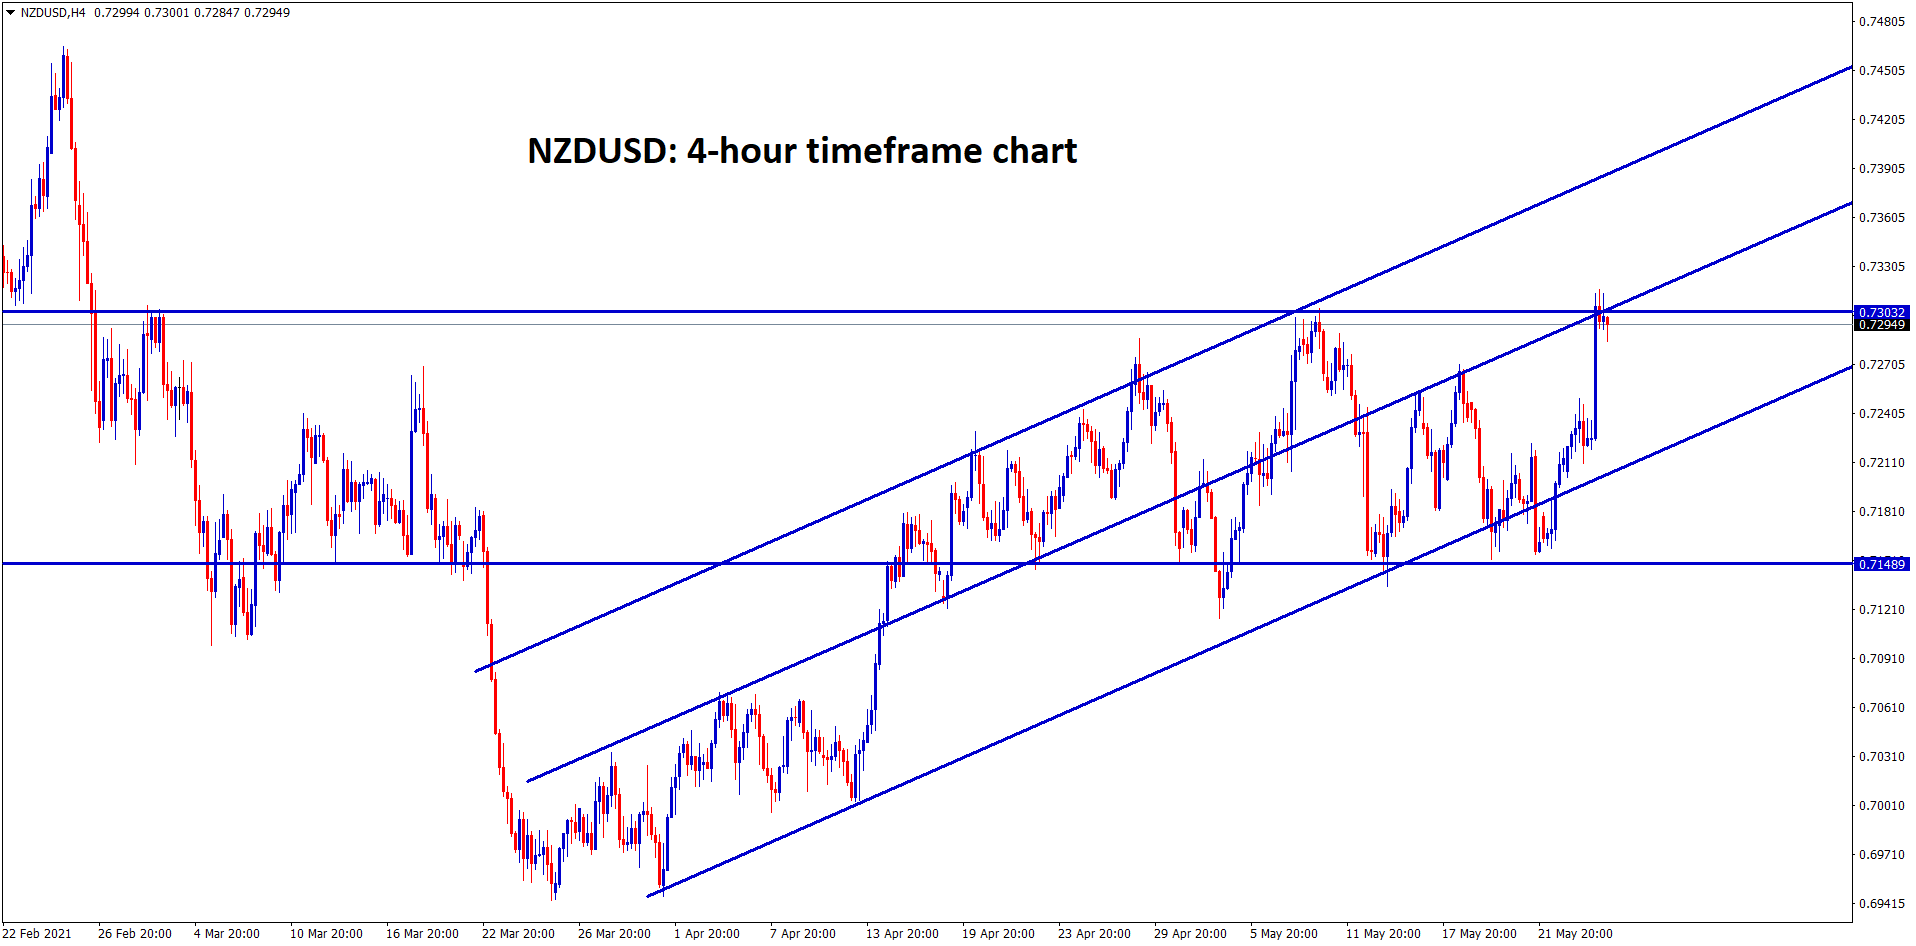 NZDUSD hits the major resistance level in 4 hour chart